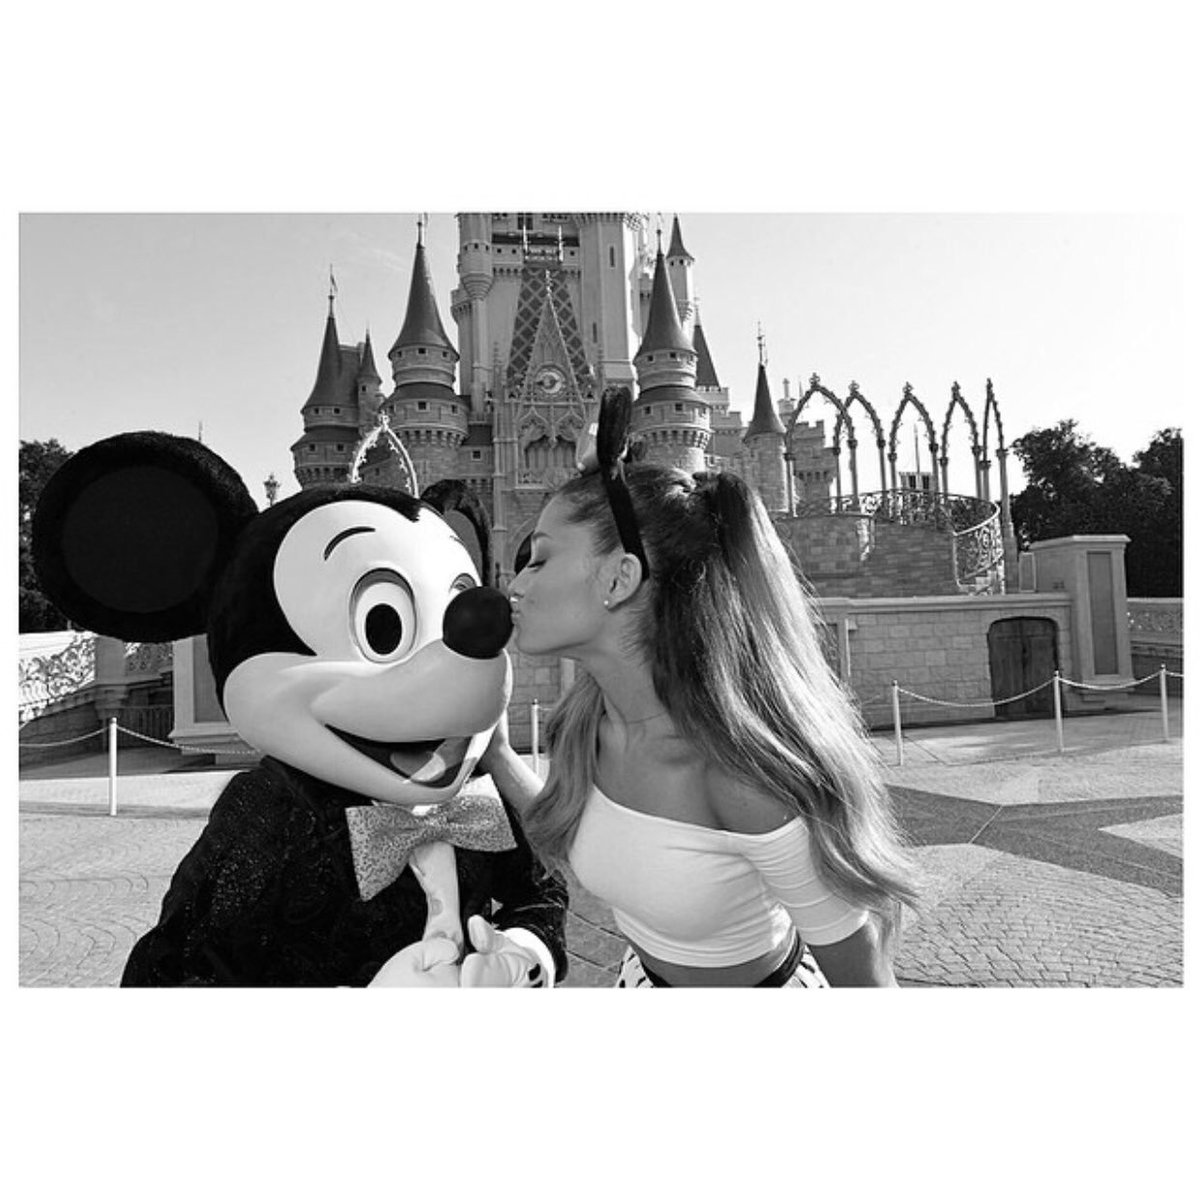 Ariana via Instagram 5 years ago today with the caption ' spending my last few days as a non 21 year old in one of my favourite childhood places with my favourite people ' ♡ (25th June 2014) <br>http://pic.twitter.com/3iGbX5XKeS